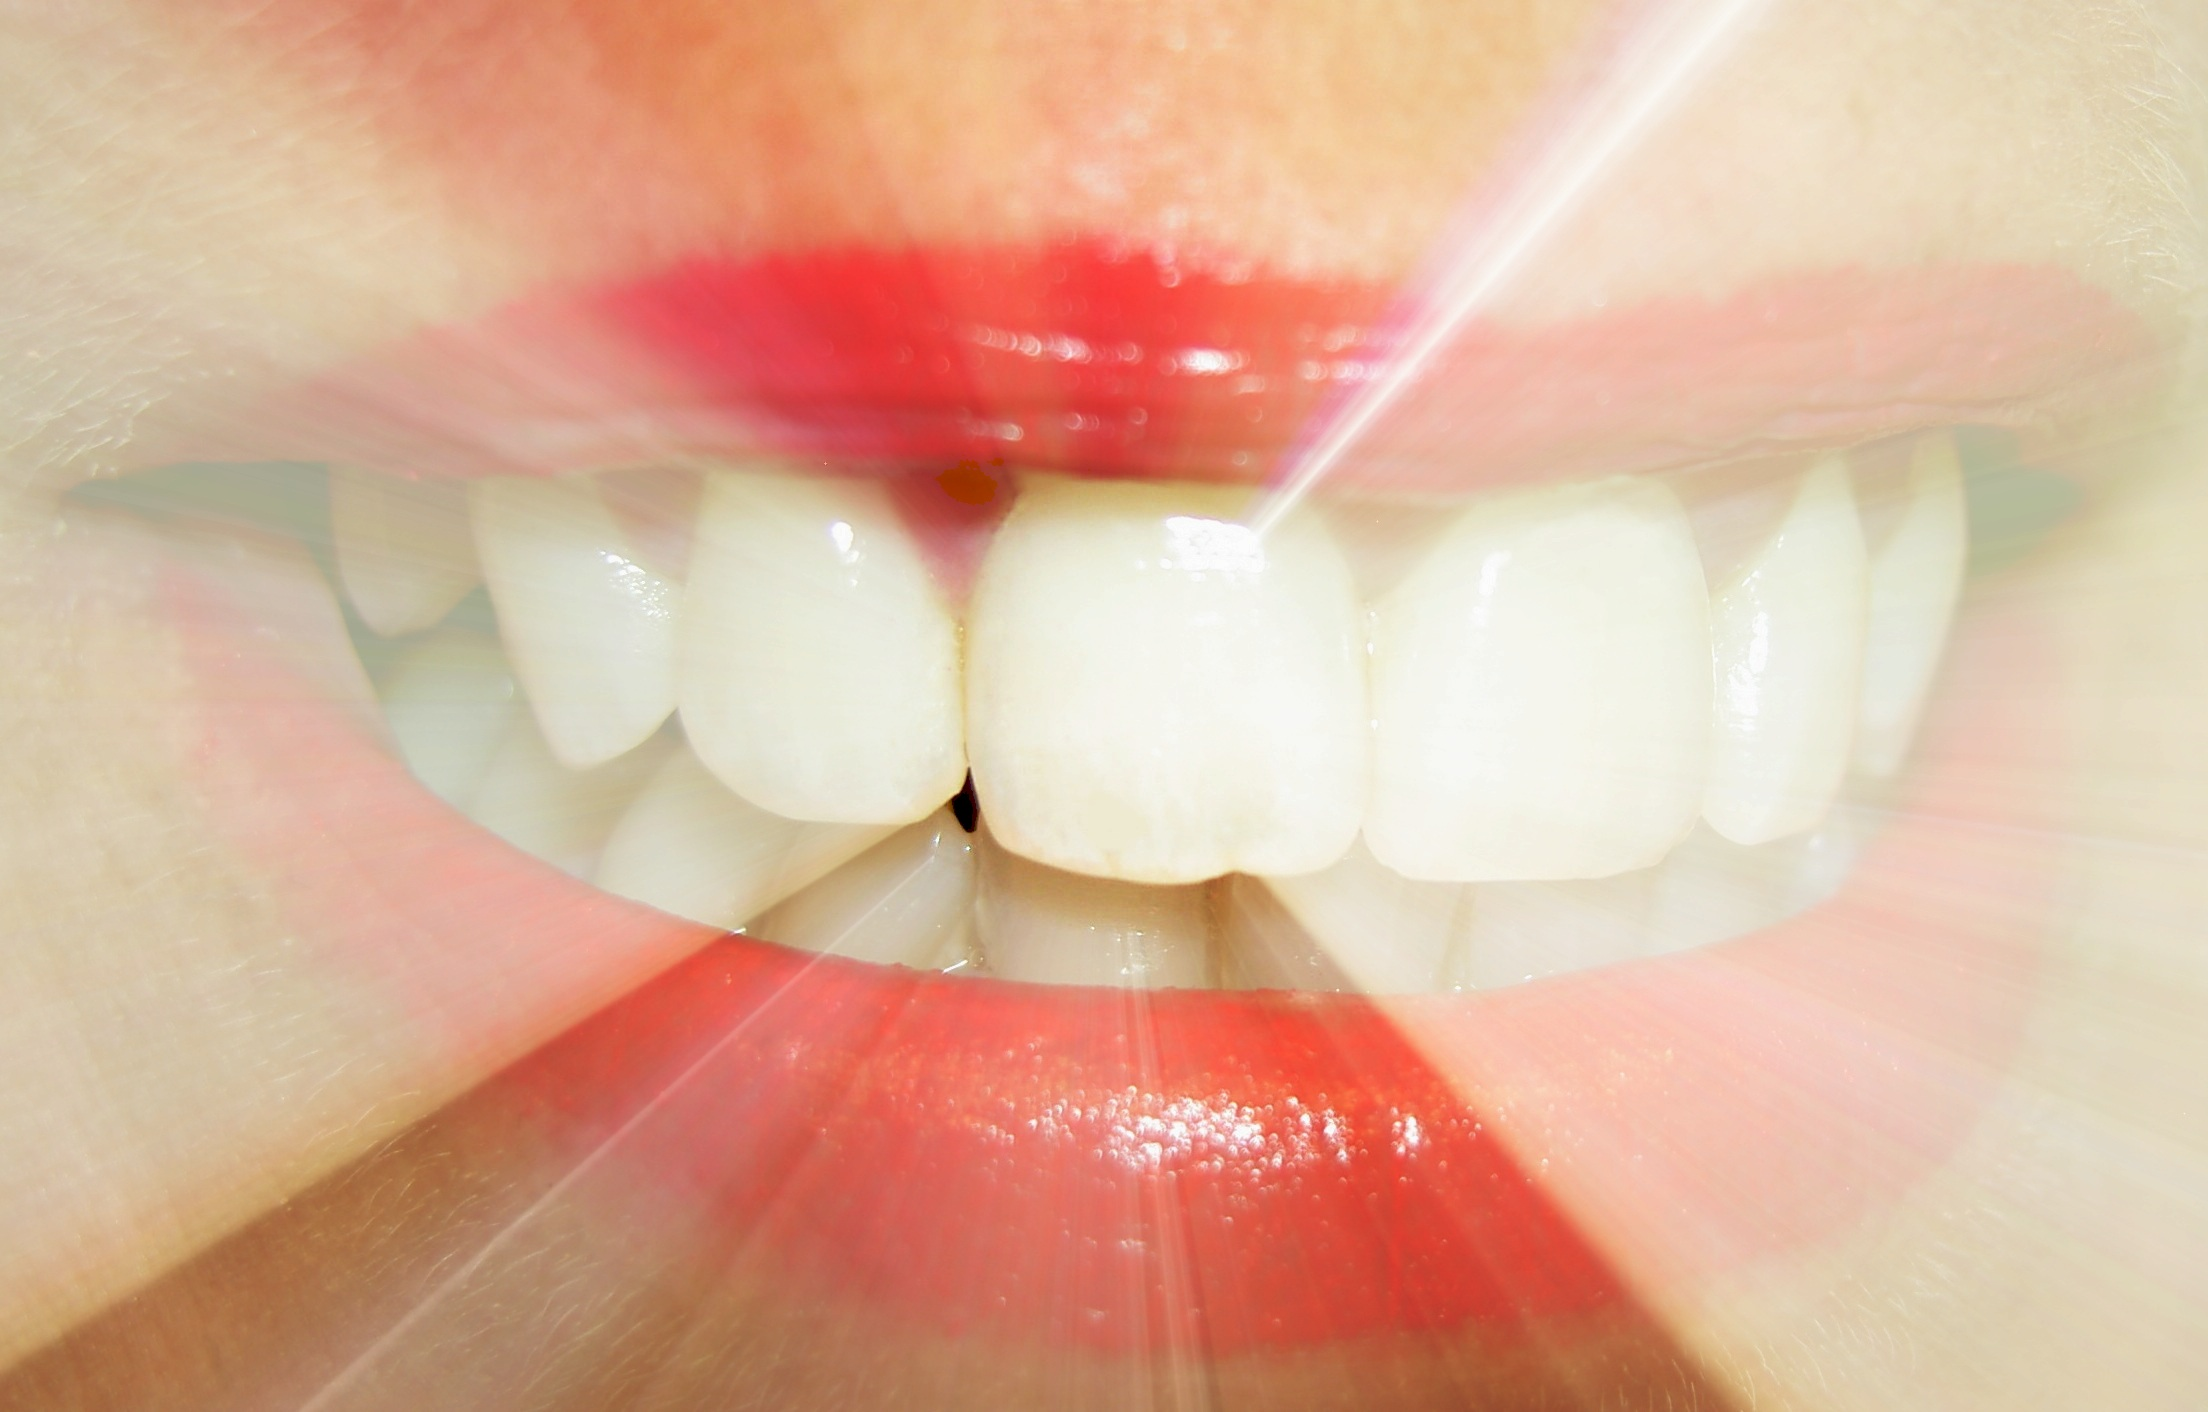 What dreams of tooth loss: the main interpretation of the dream